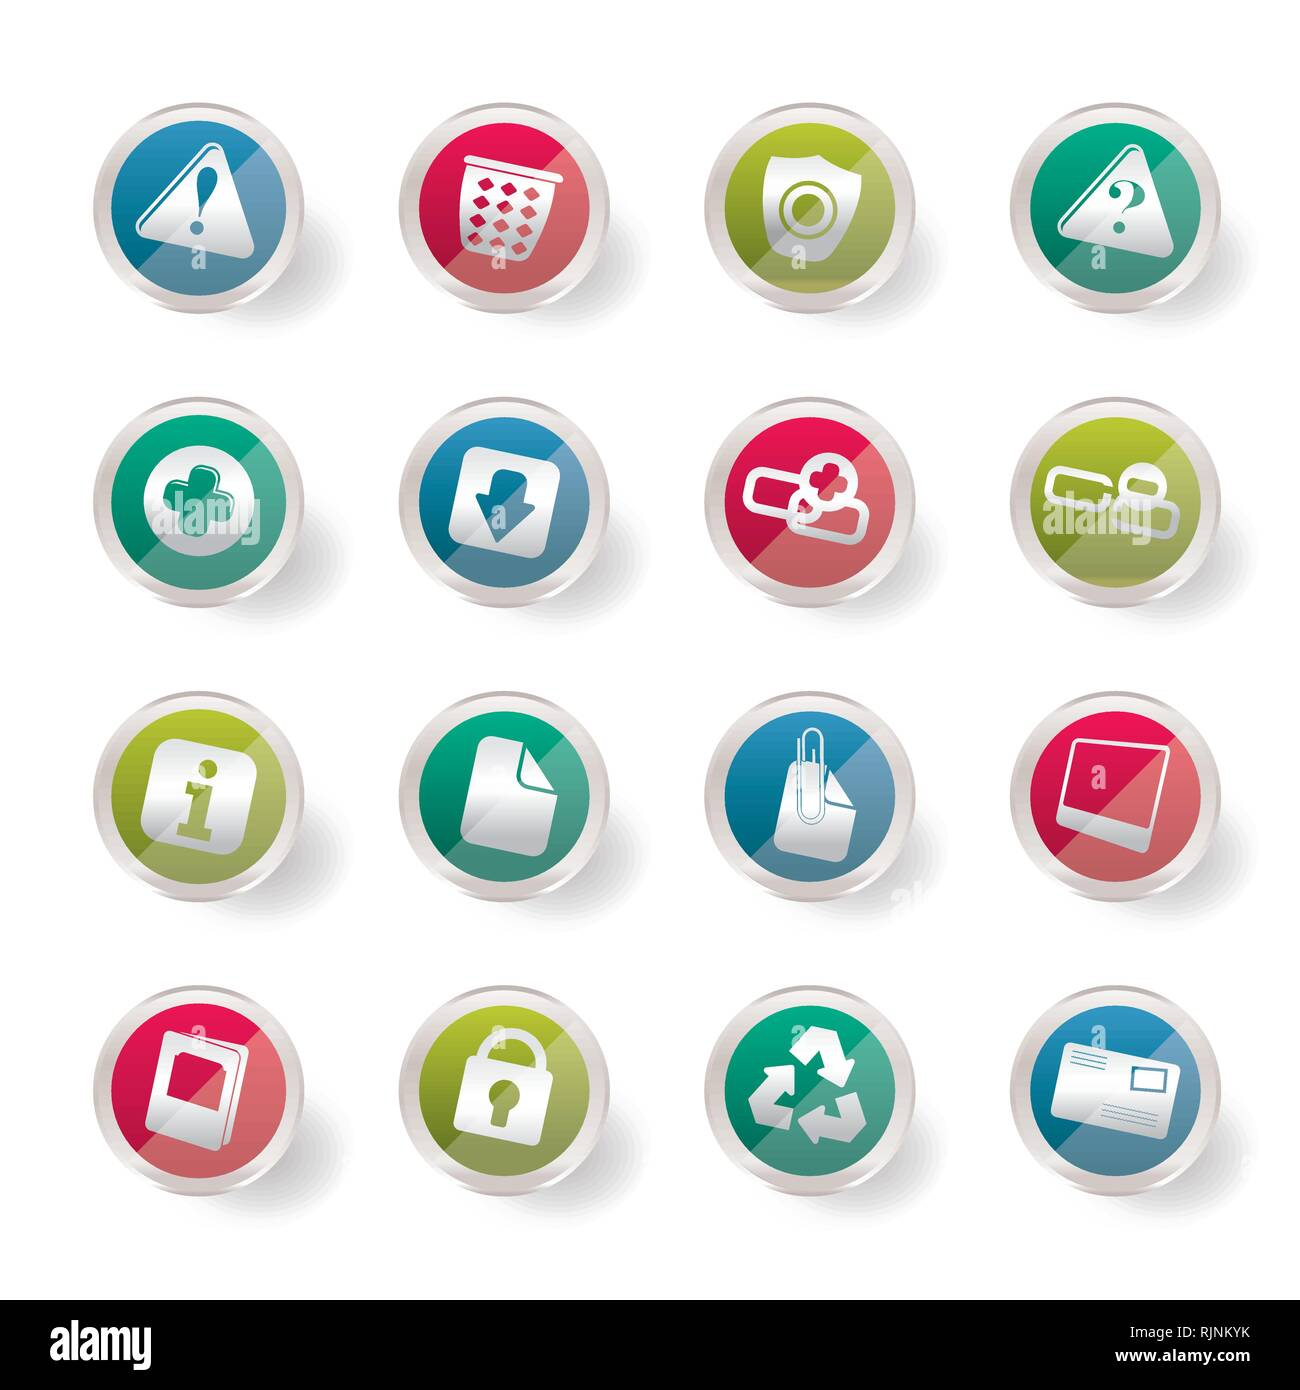 Stylized Web site and computer Icons over colored background - Vector Icon Set - Stock Vector